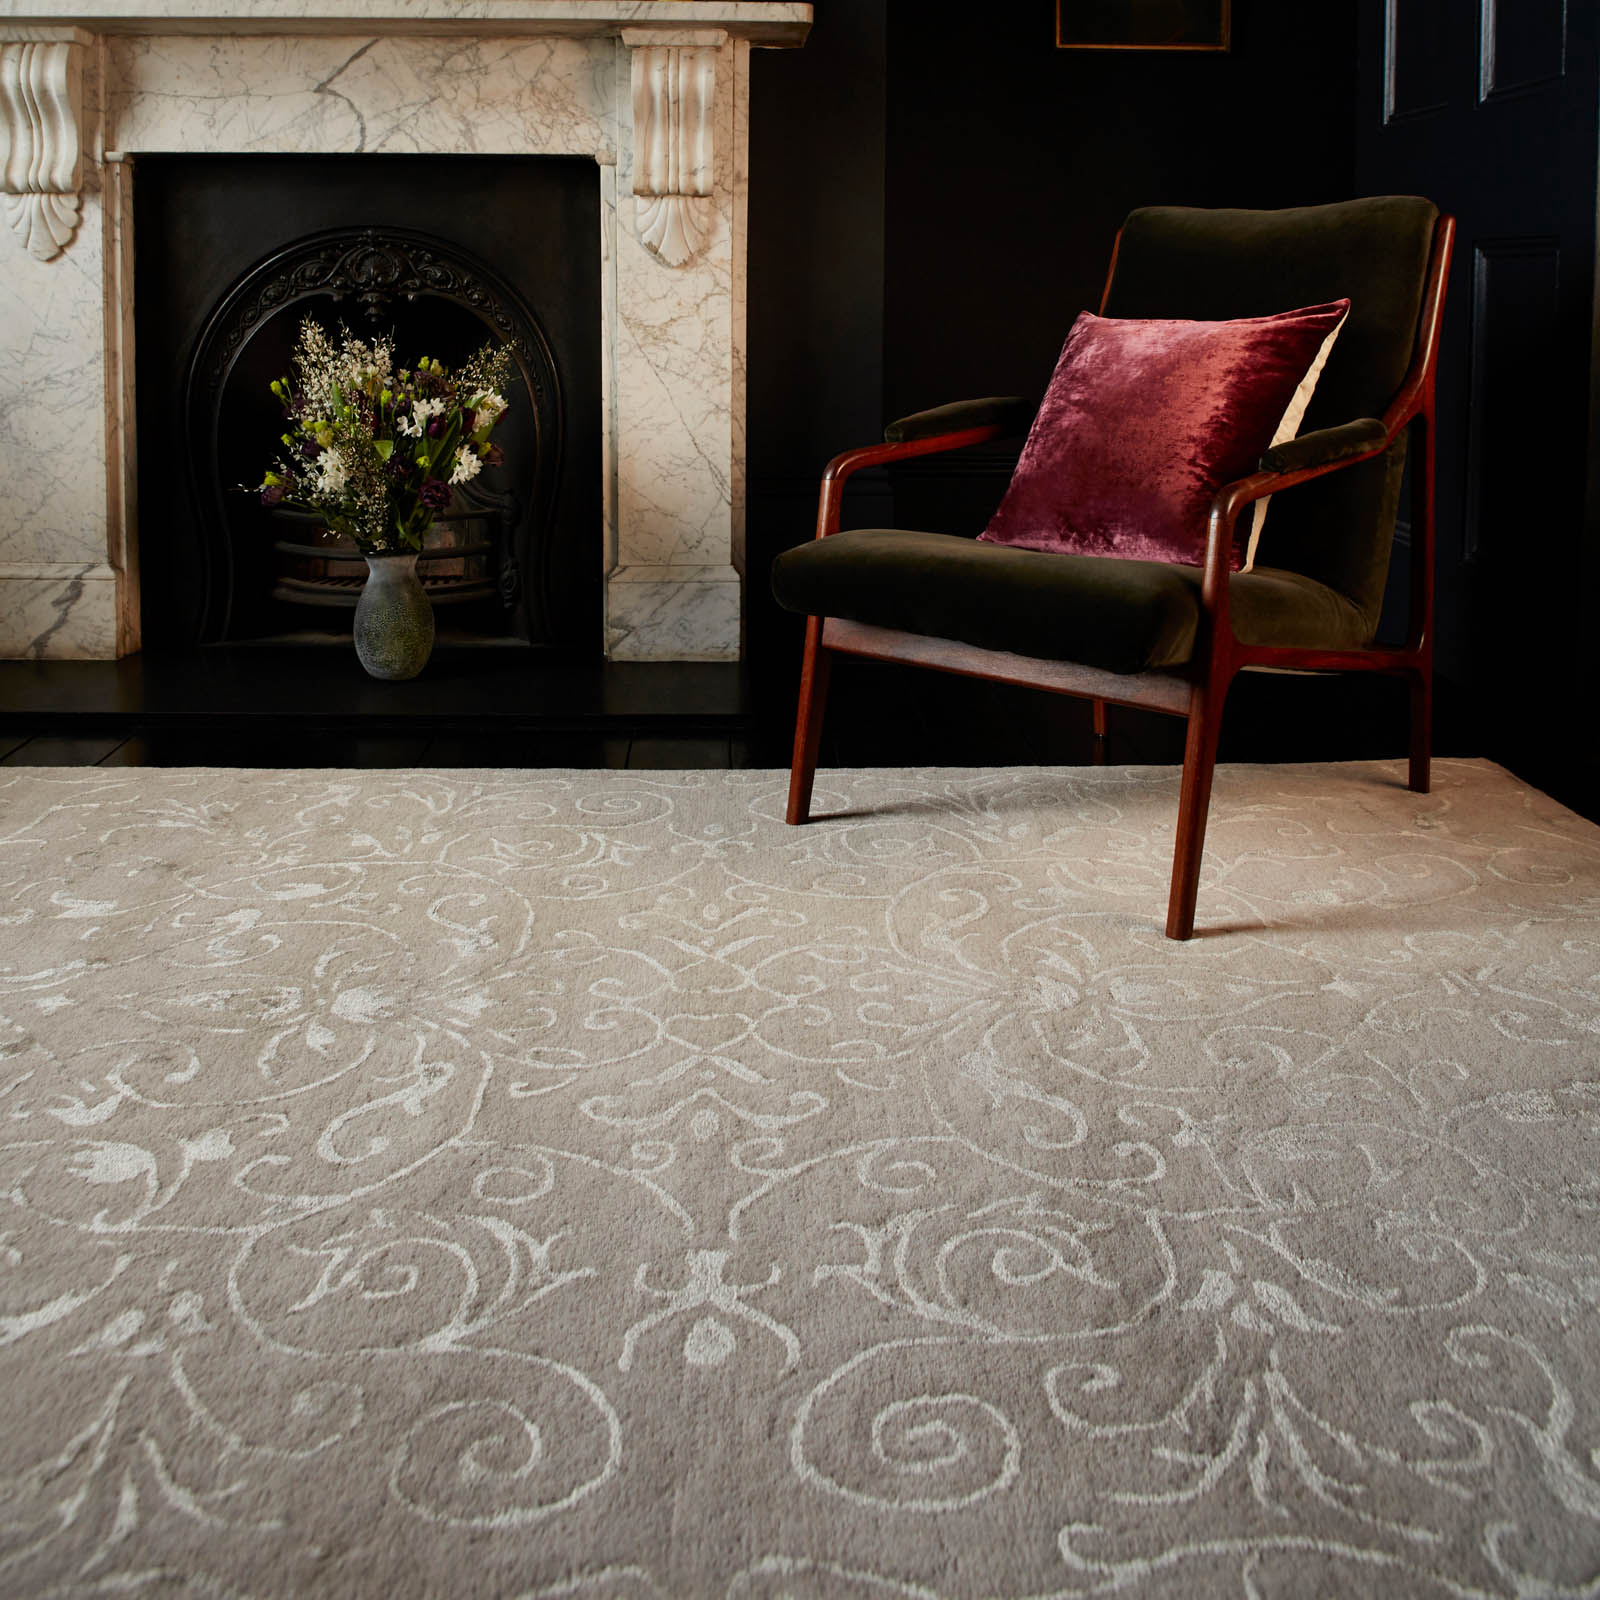 Victoria Rugs in Stone